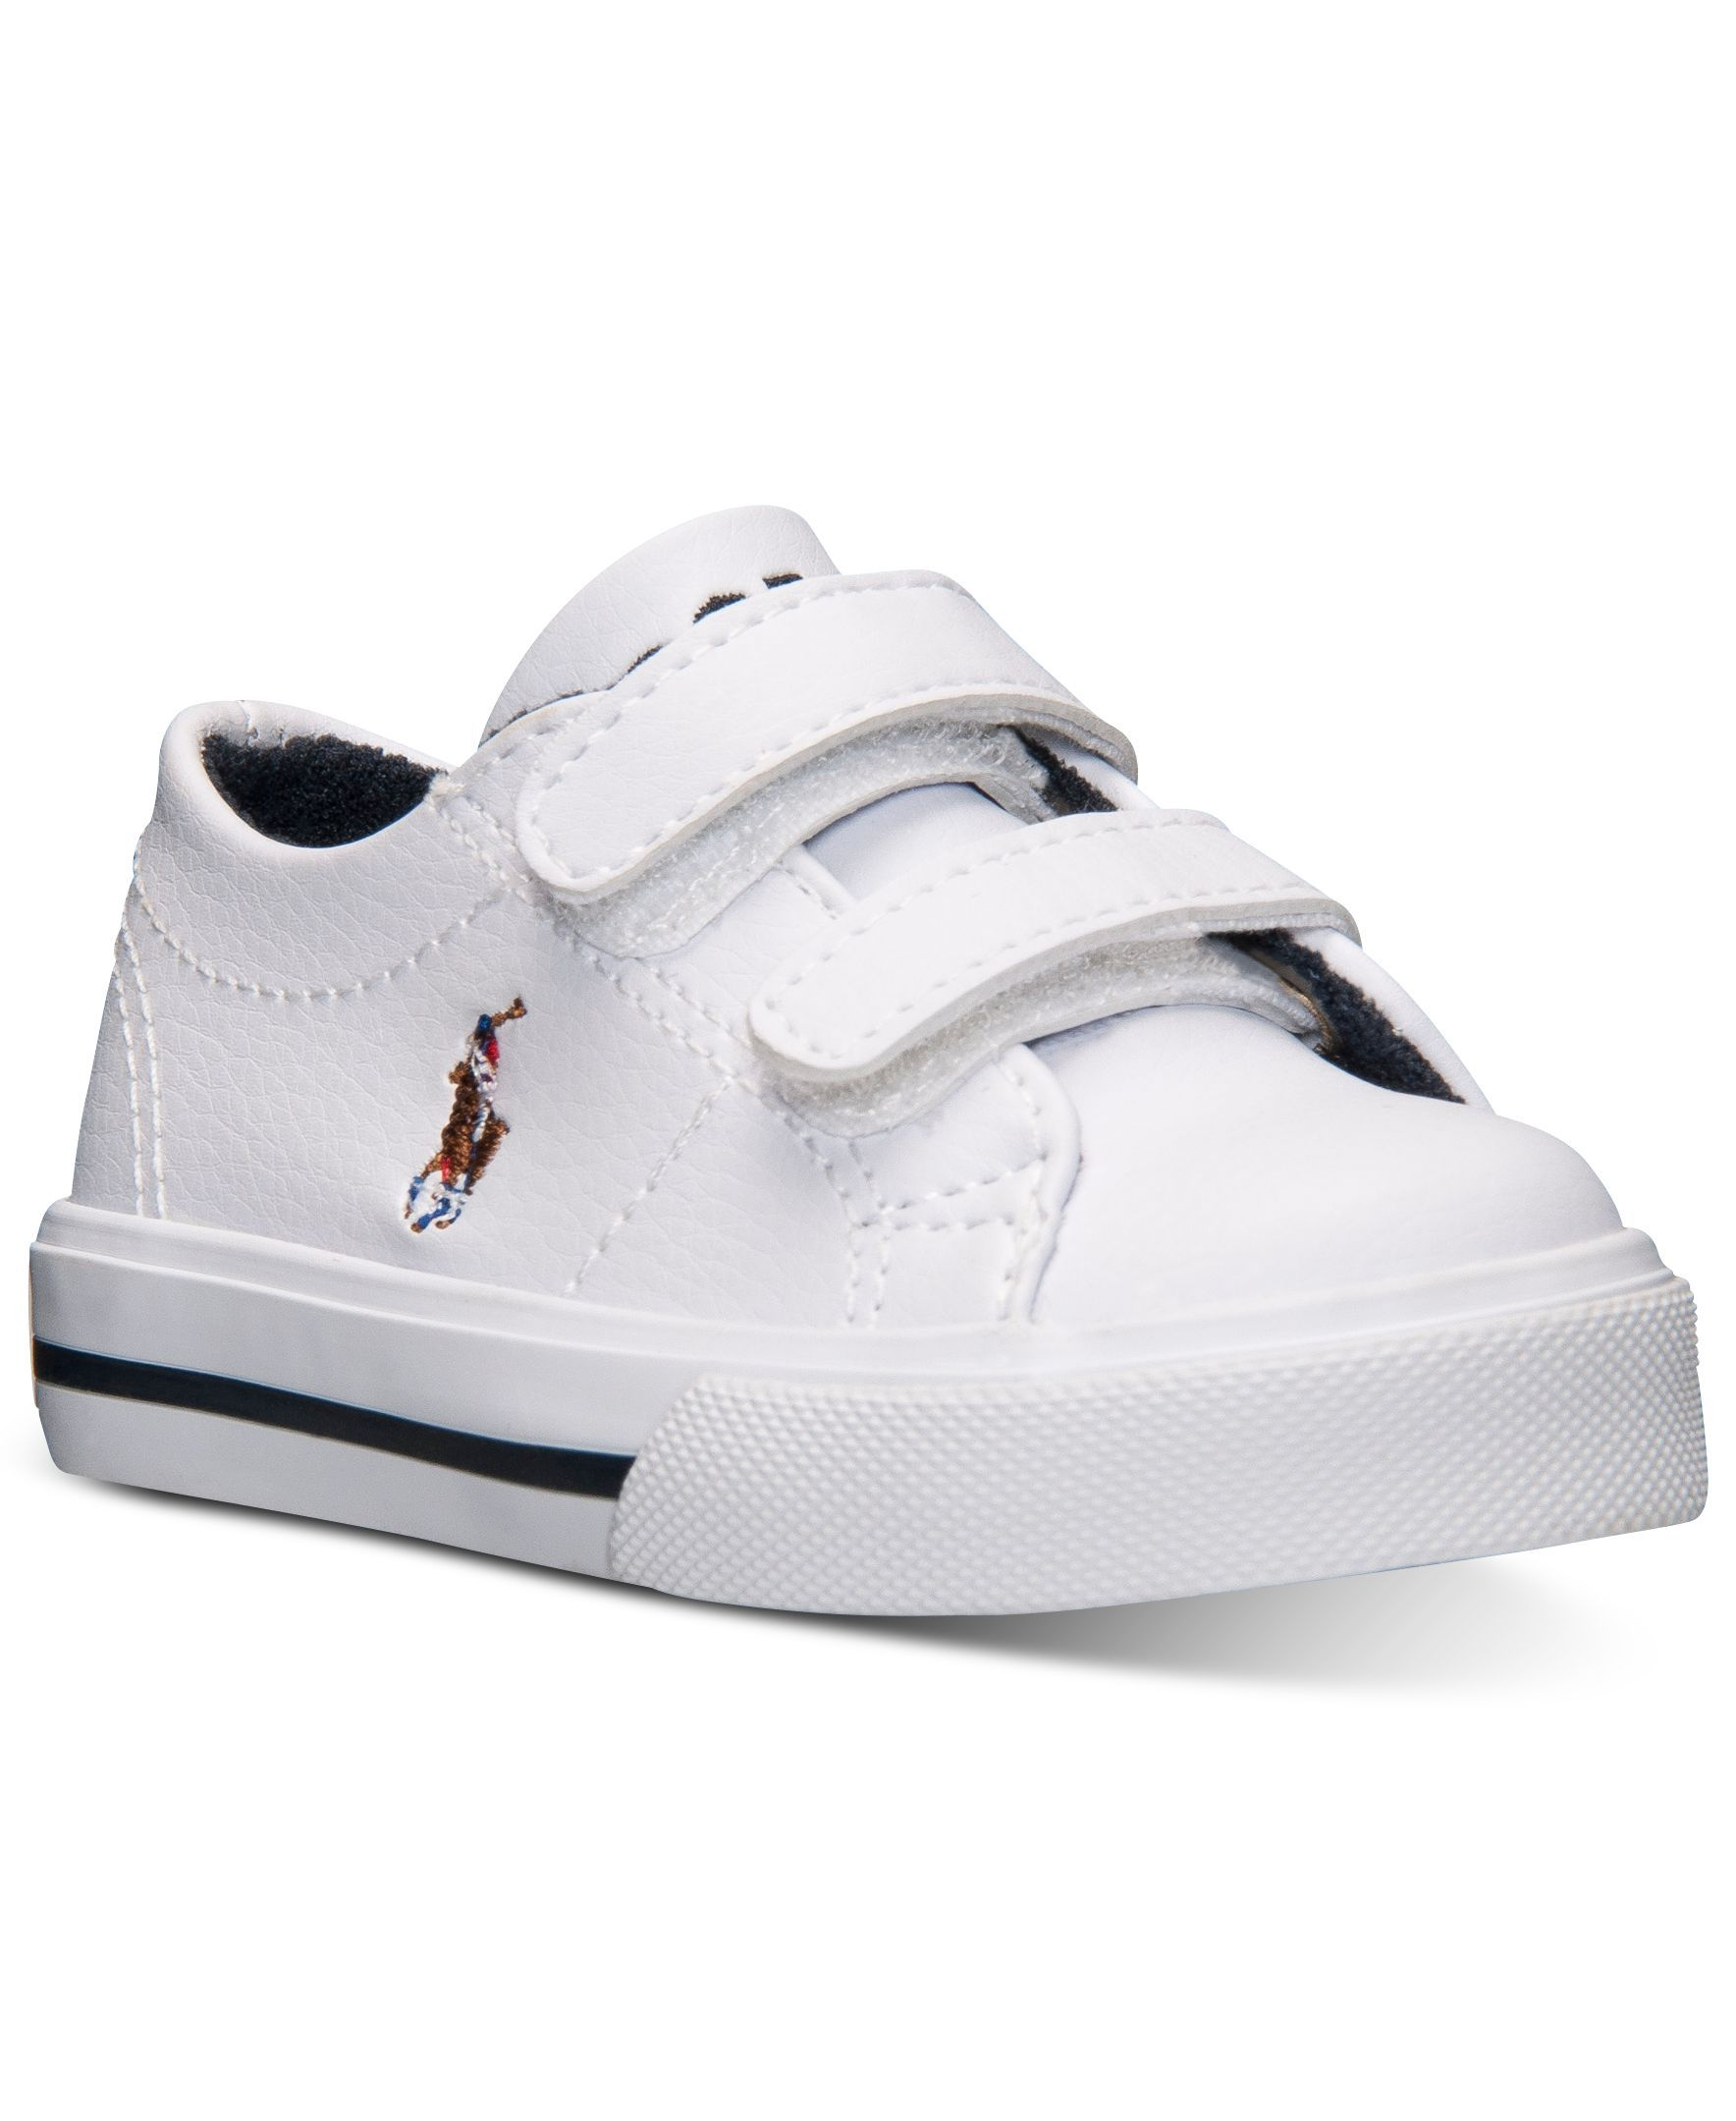 016bf022080 Polo Ralph Lauren Toddler Boys  Scholar Ez Casual Sneakers from Finish Line